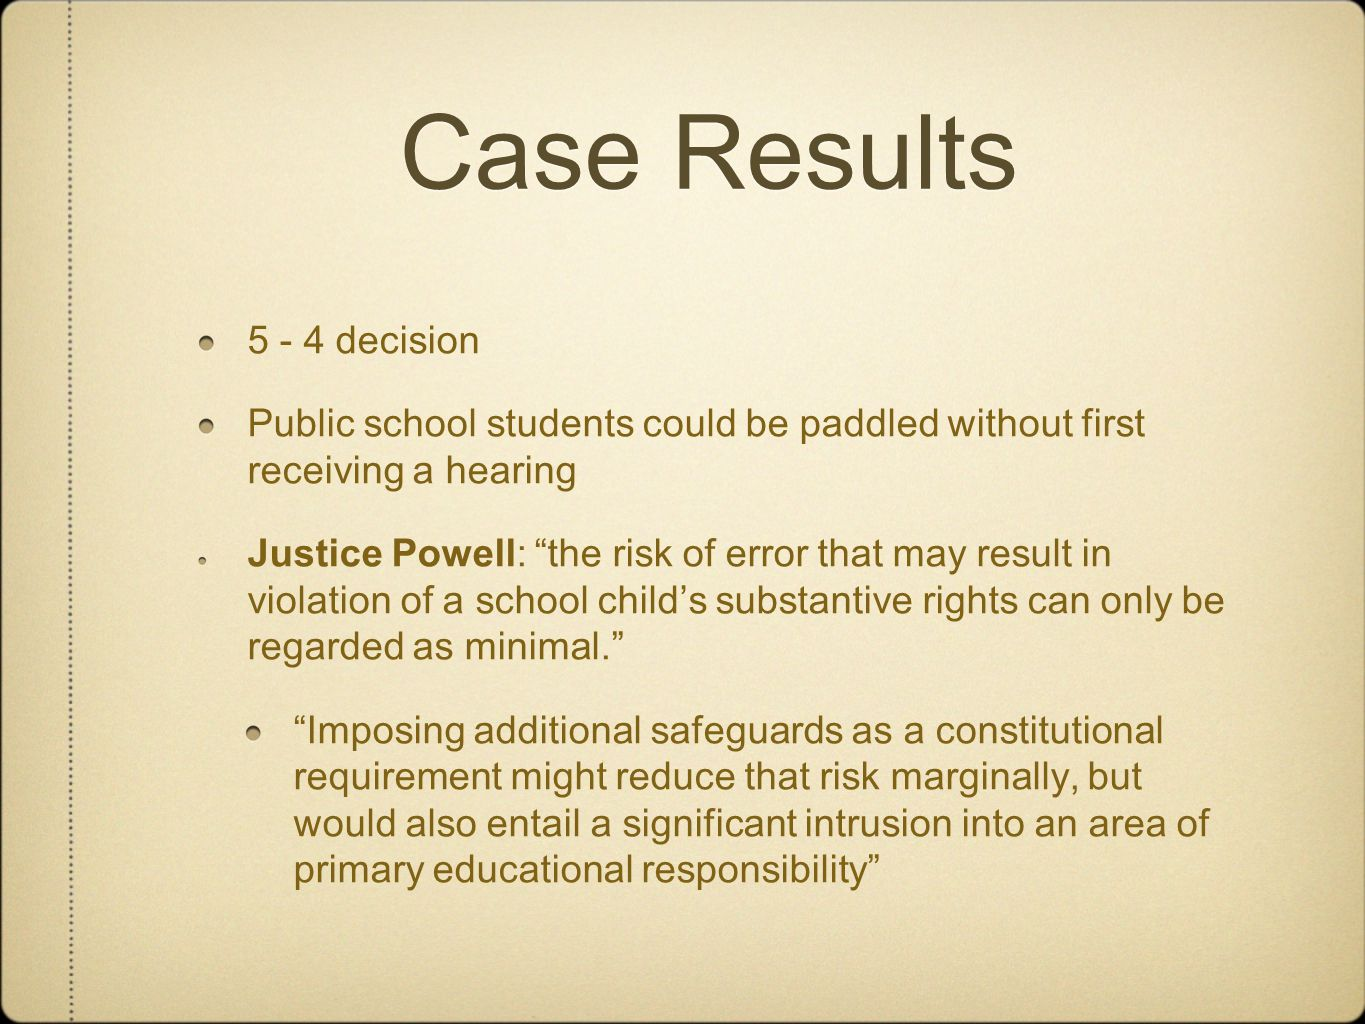 Case Results 5 - 4 decision Public school students could be paddled without first receiving a hearing Justice Powell: the risk of error that may result in violation of a school child's substantive rights can only be regarded as minimal. Imposing additional safeguards as a constitutional requirement might reduce that risk marginally, but would also entail a significant intrusion into an area of primary educational responsibility